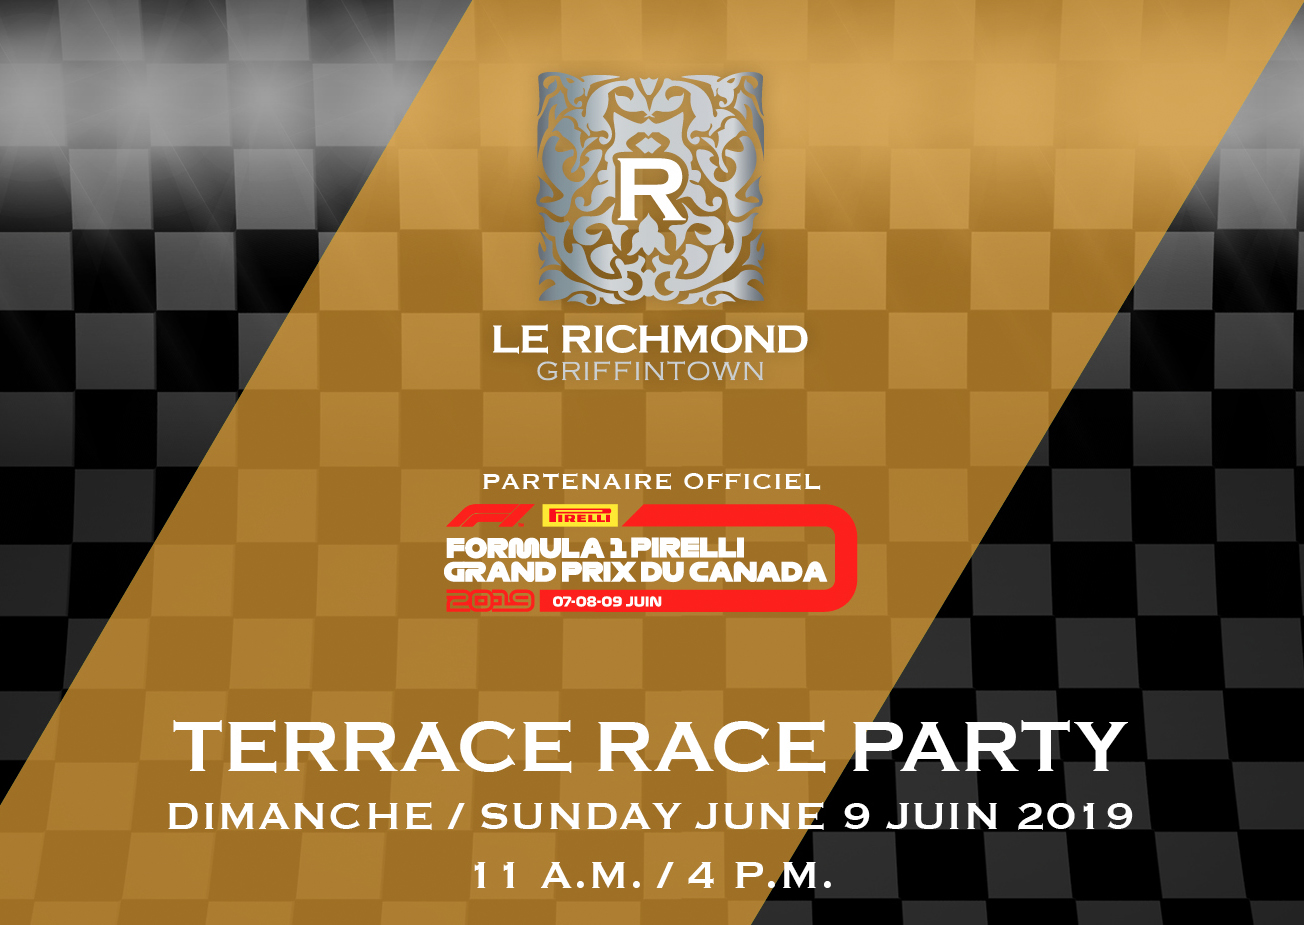 Terrace Race Party Richmond Grand Prix 2019